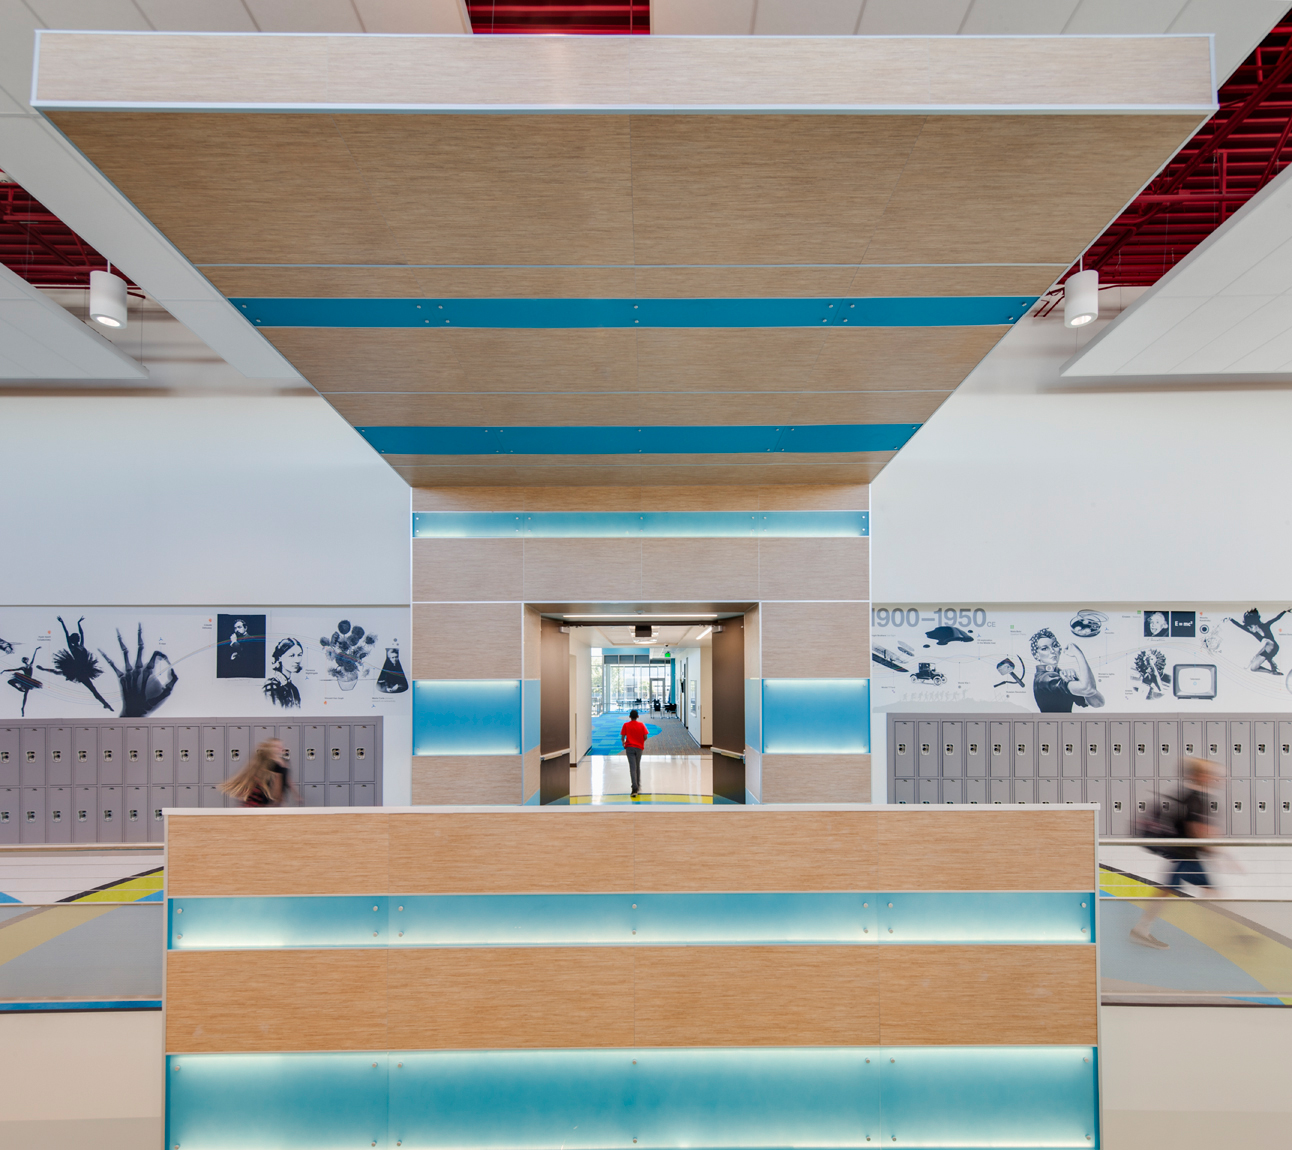 View looking down class room wing atMt. Jordan Middle School in Sandy Utah for MHTN Architects / Hogan & Associates. The canopies feature wood and stripes of illuminated, colored palstic. This one is blue and has a boy in a red shirt running away from the camera.